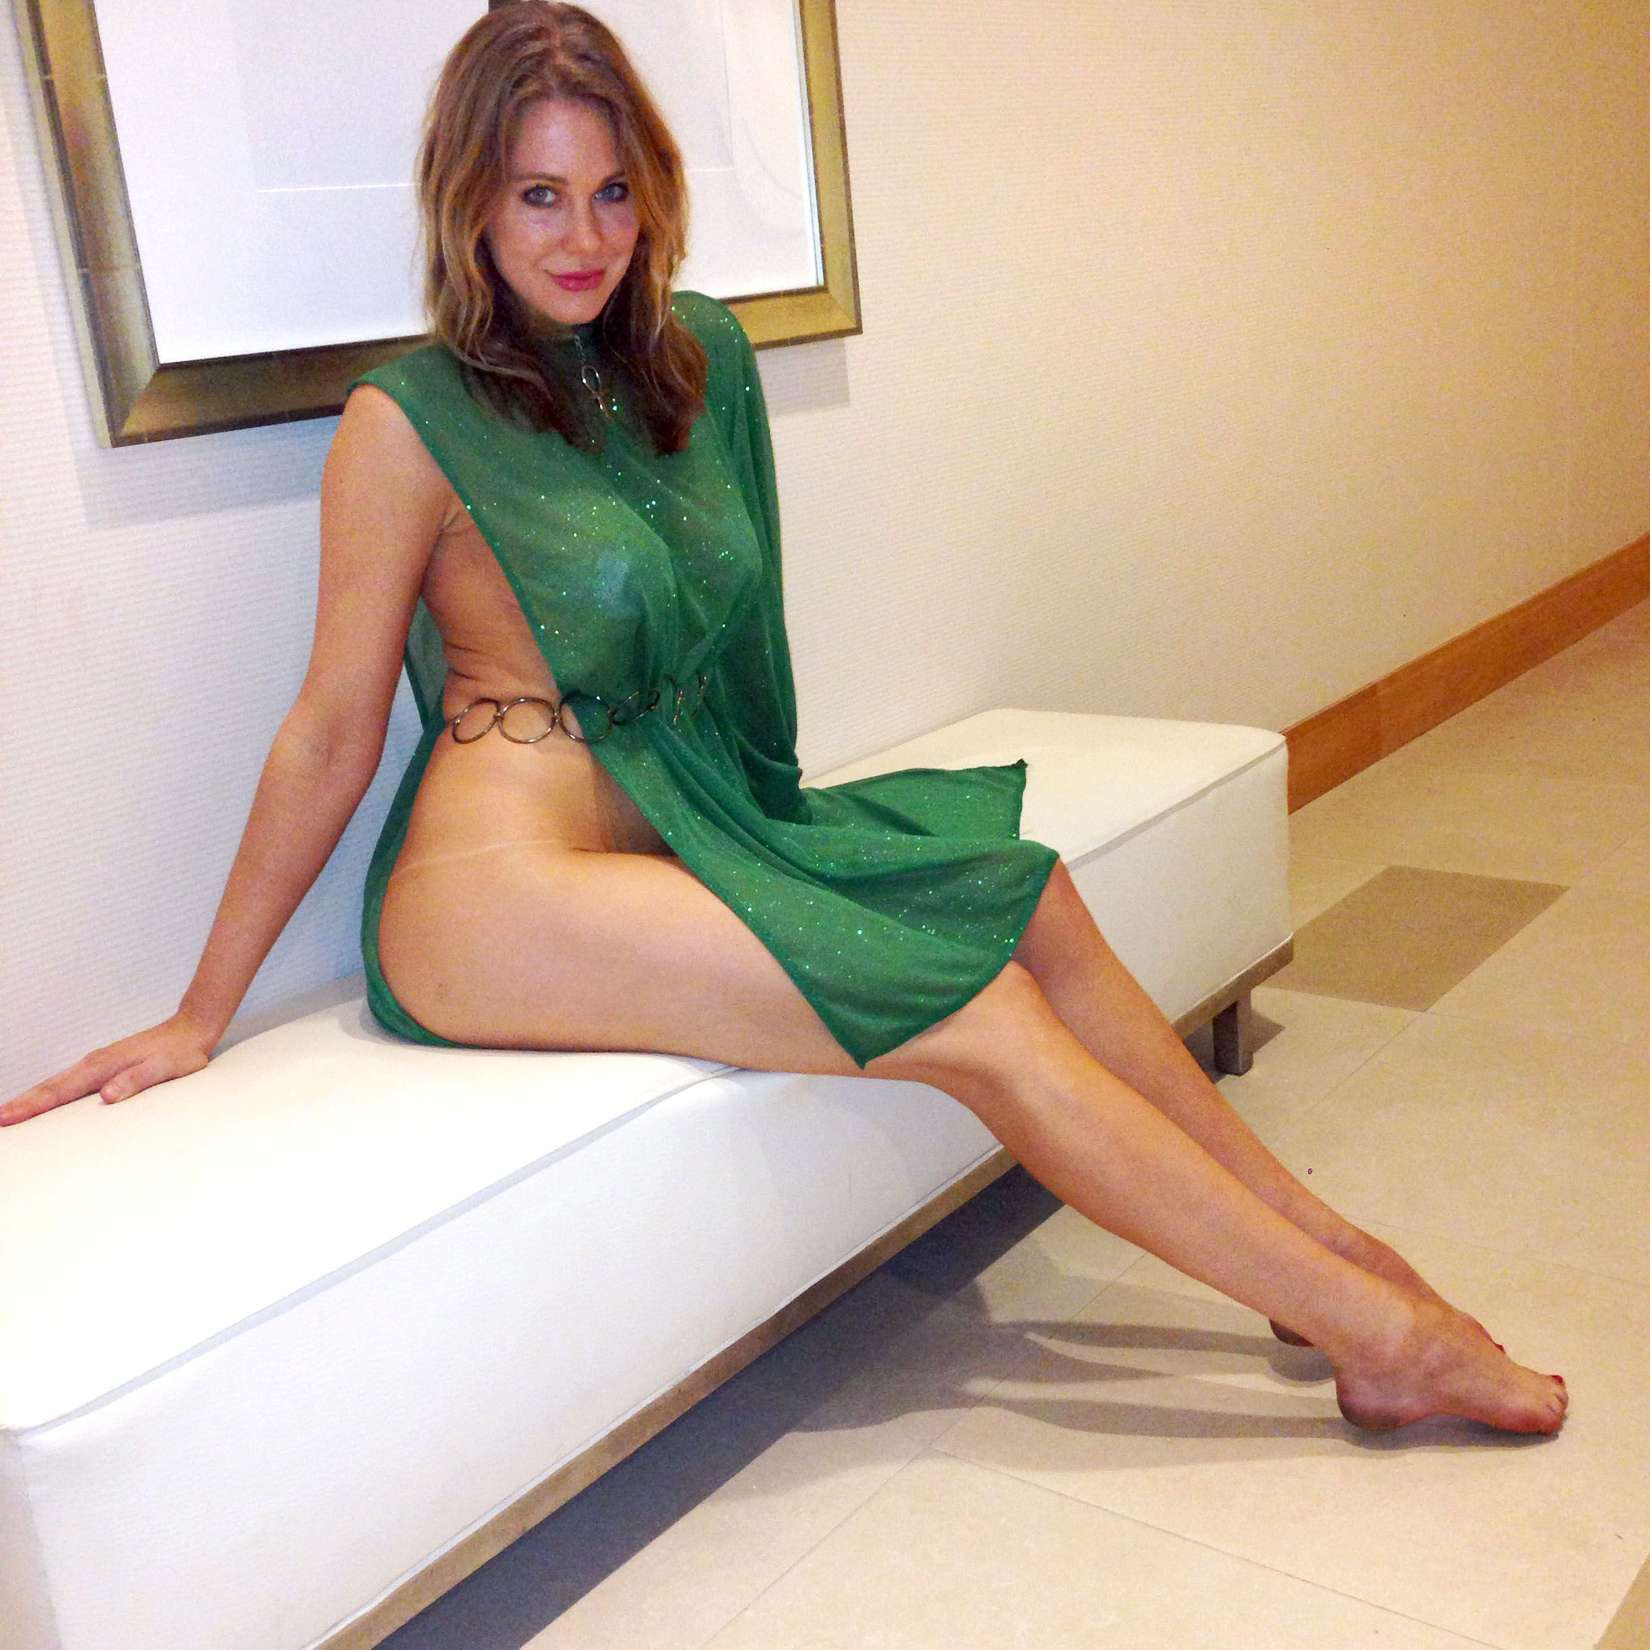 Maitland Ward Gets In The Holiday Spirit: An FCCC Post | Moshpits And ...: https://moshpitsandmovies.wordpress.com/2014/12/18/maitland-ward...